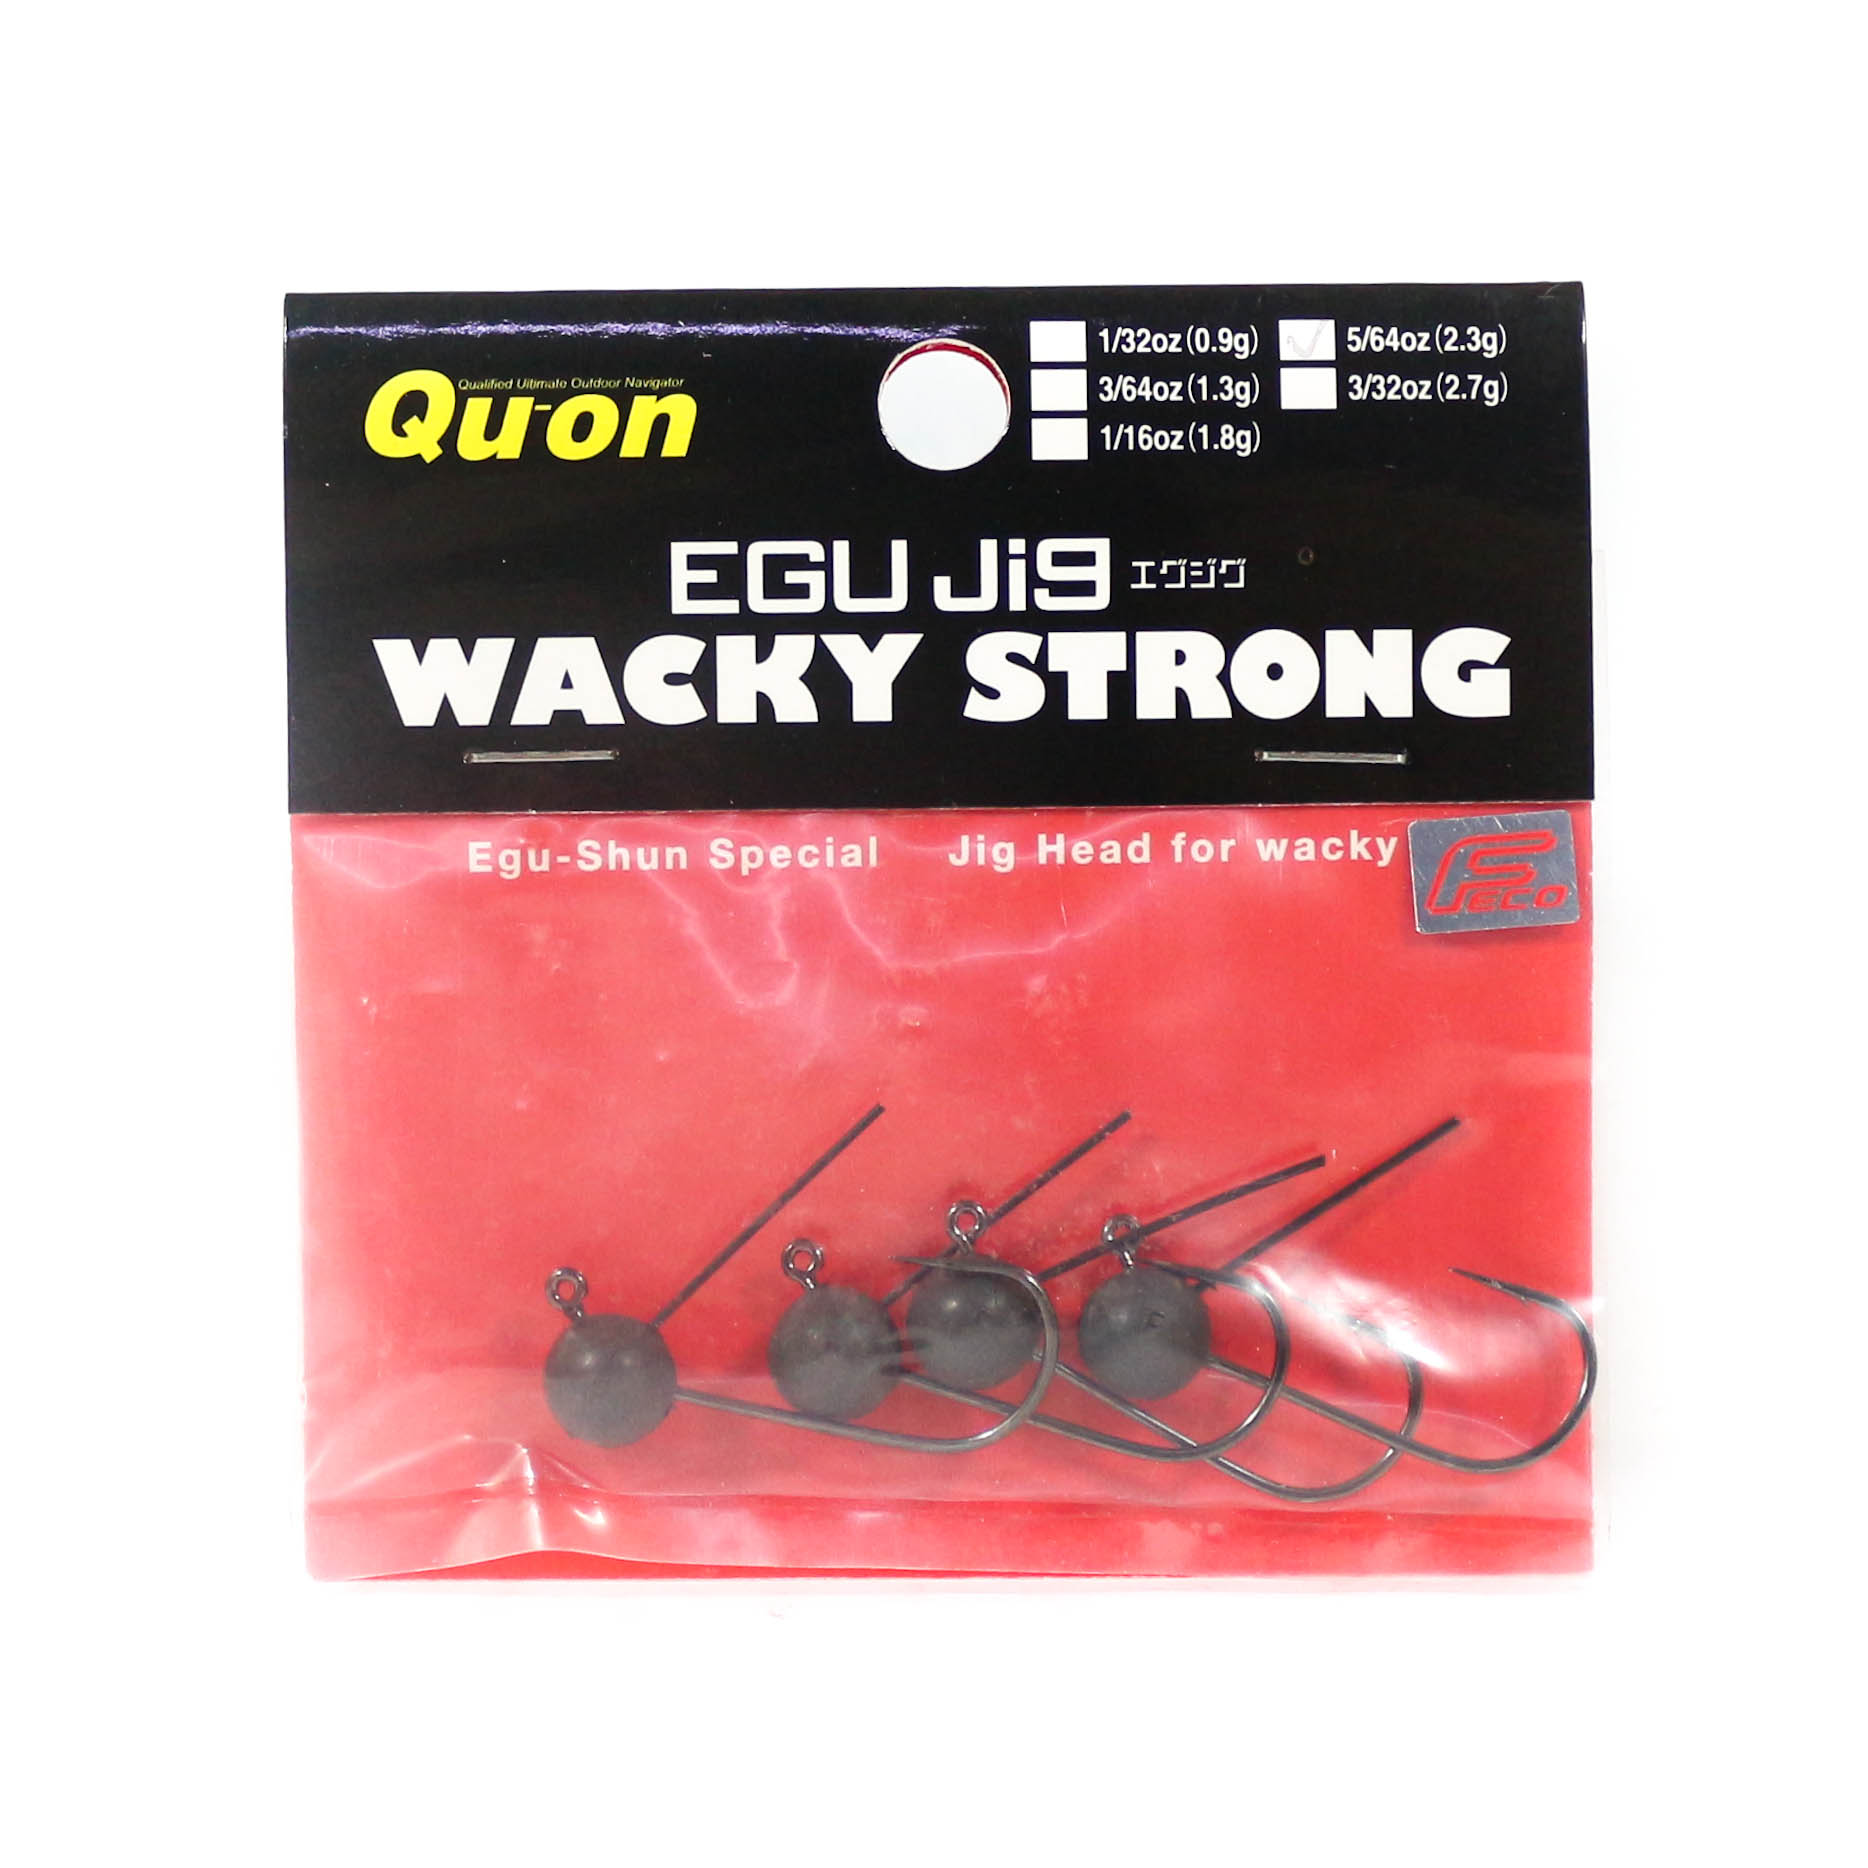 Jackson Jig Head Egu Jig Wacky Strong 5 Piece per Pack Size 4 , 5/64 oz (8315)